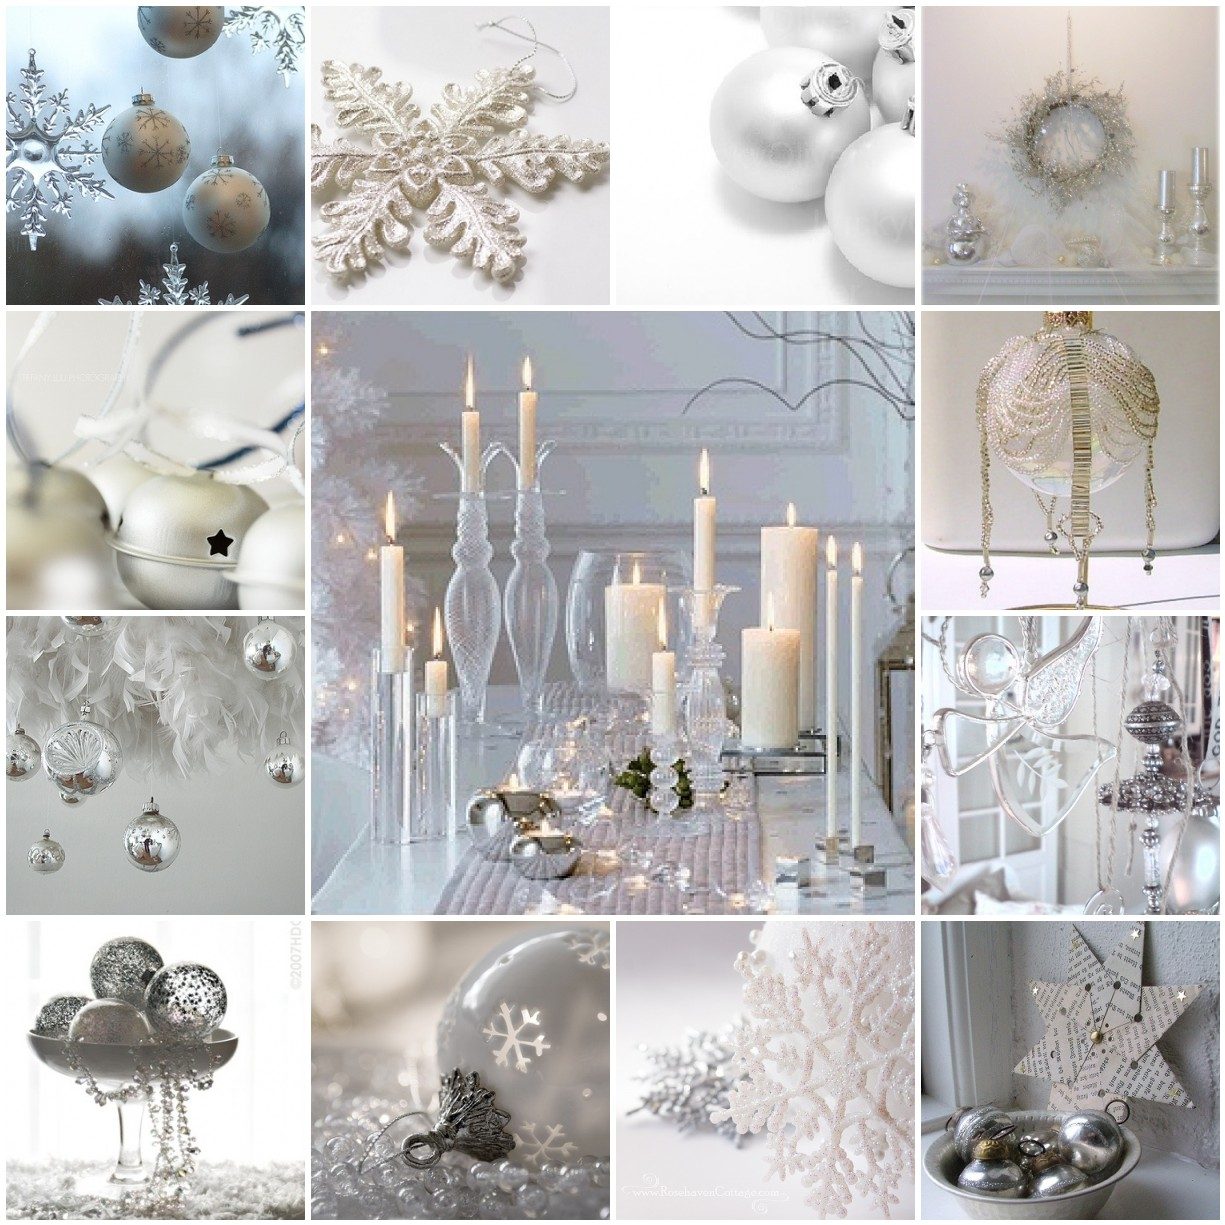 Silver and white christmas table decorations - Silver White Christmas